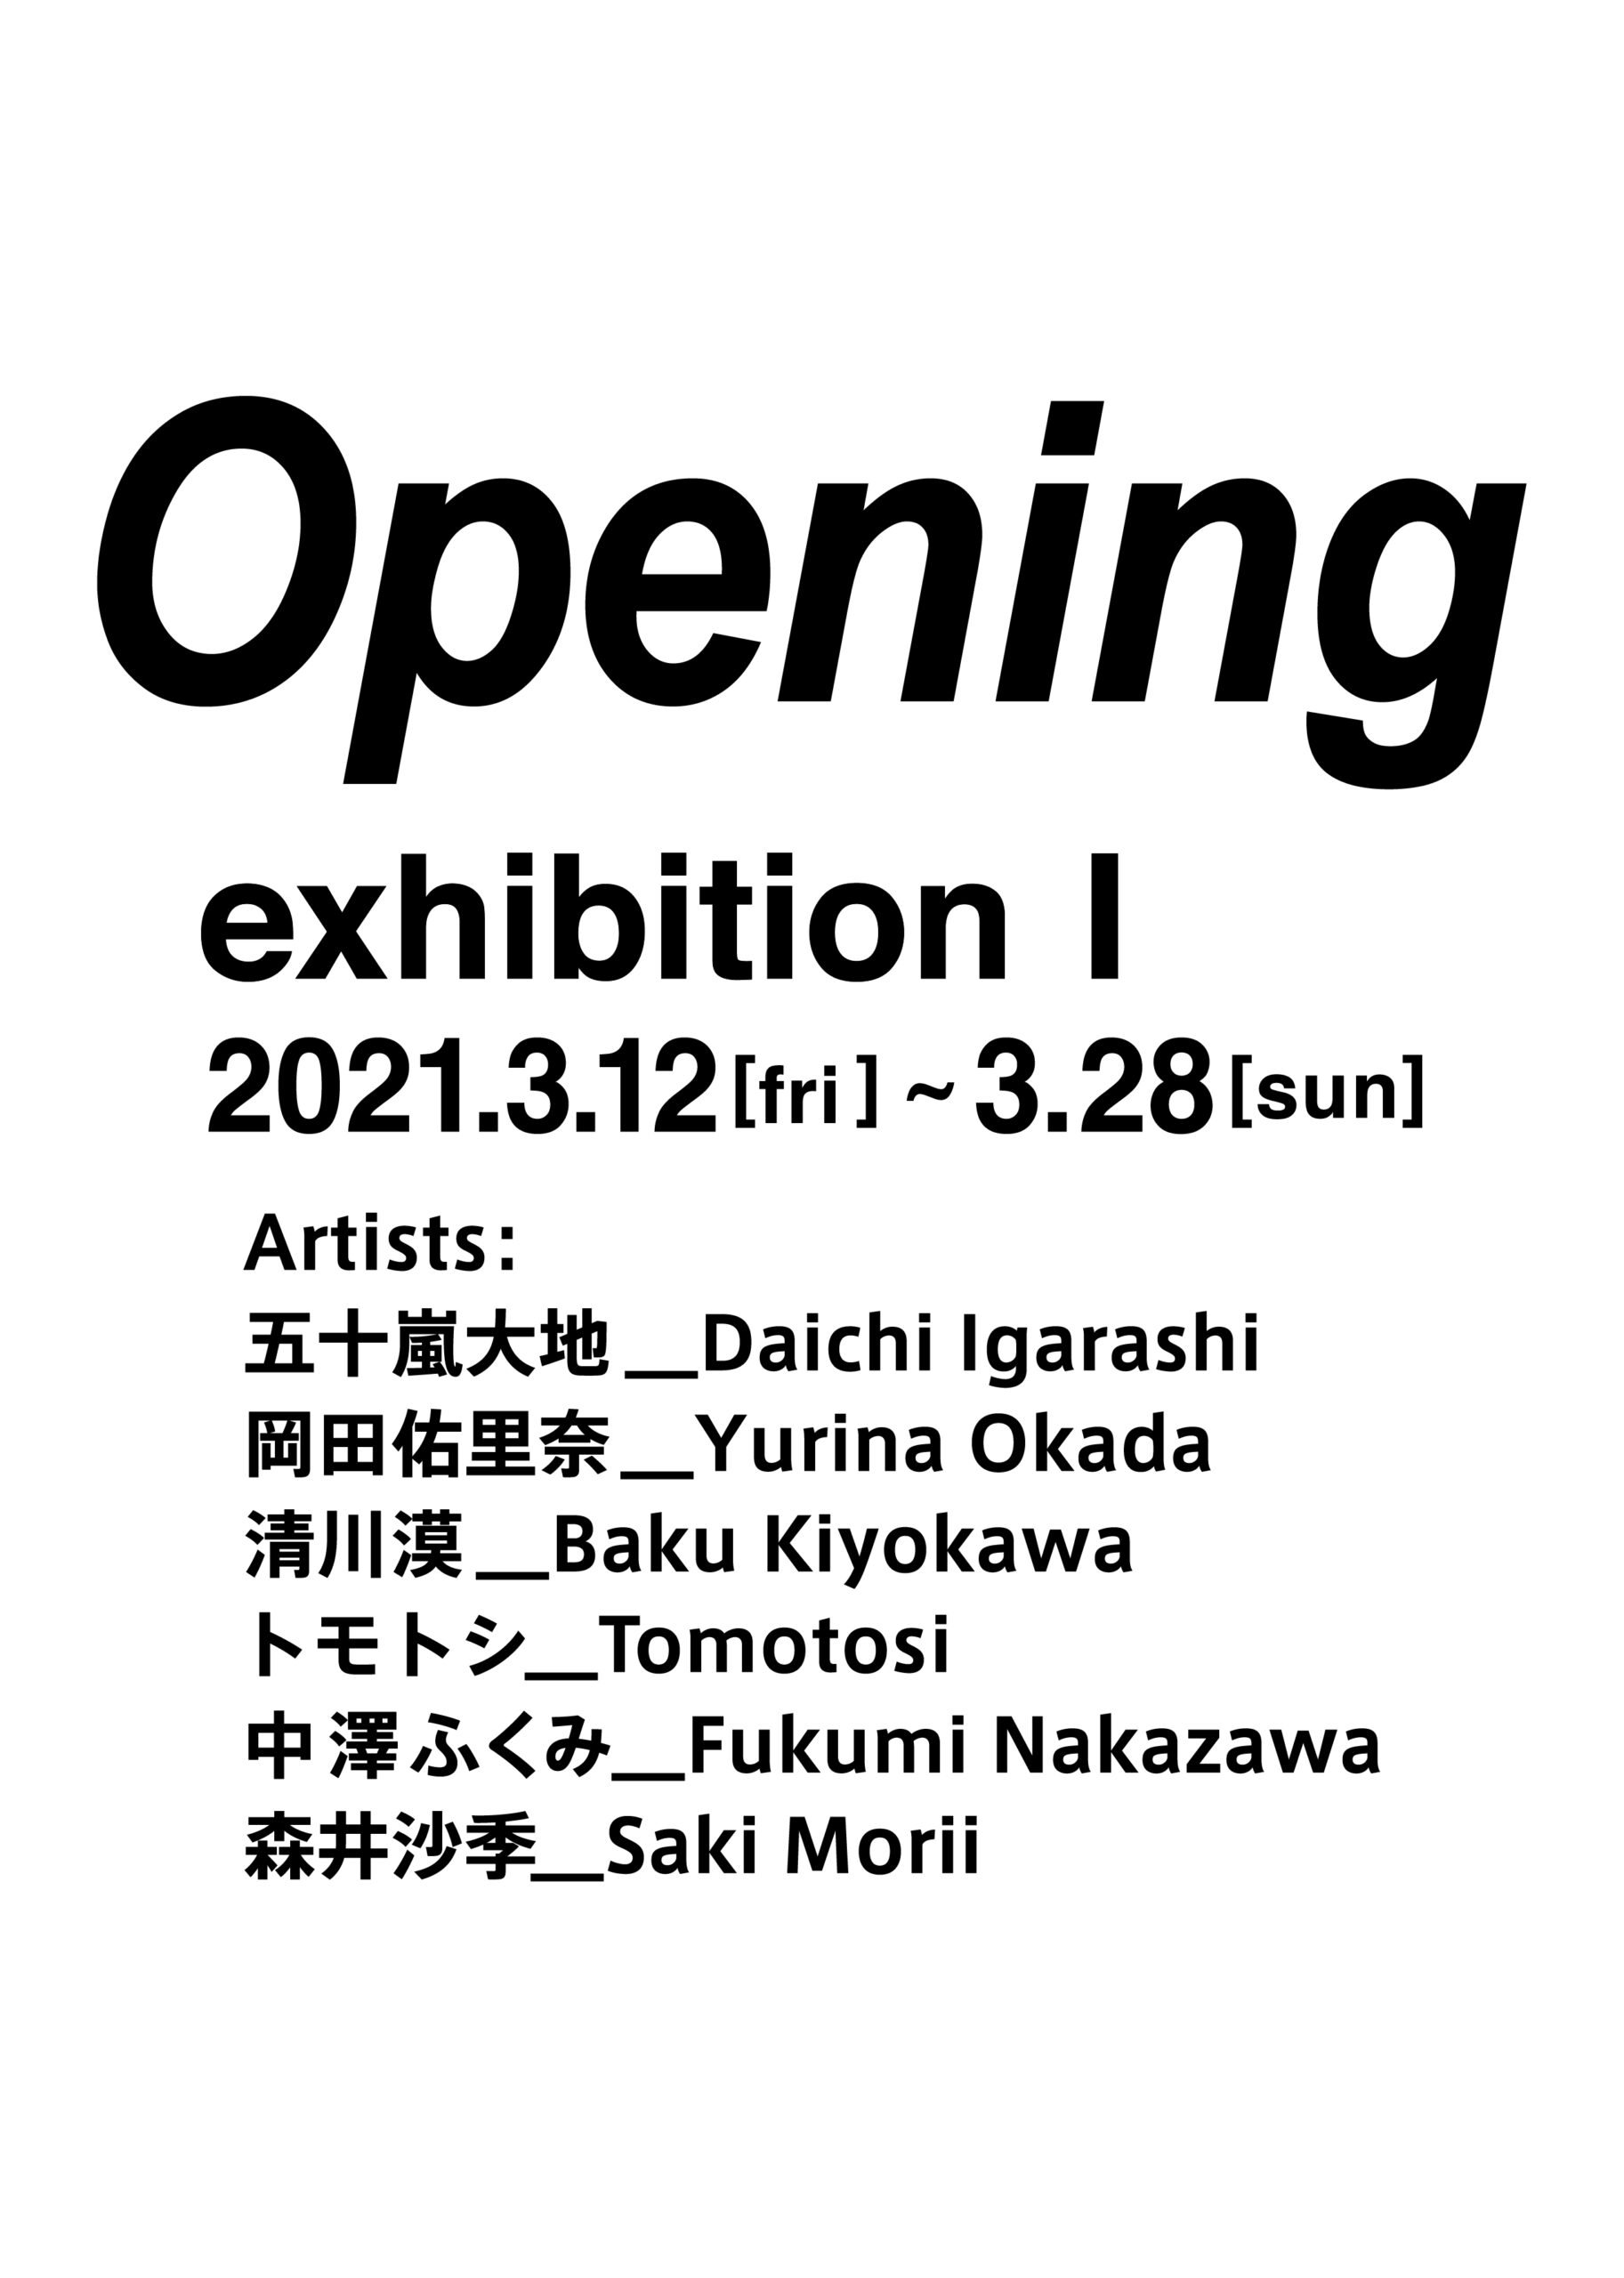 biscuit gallery Opening Exhibition I